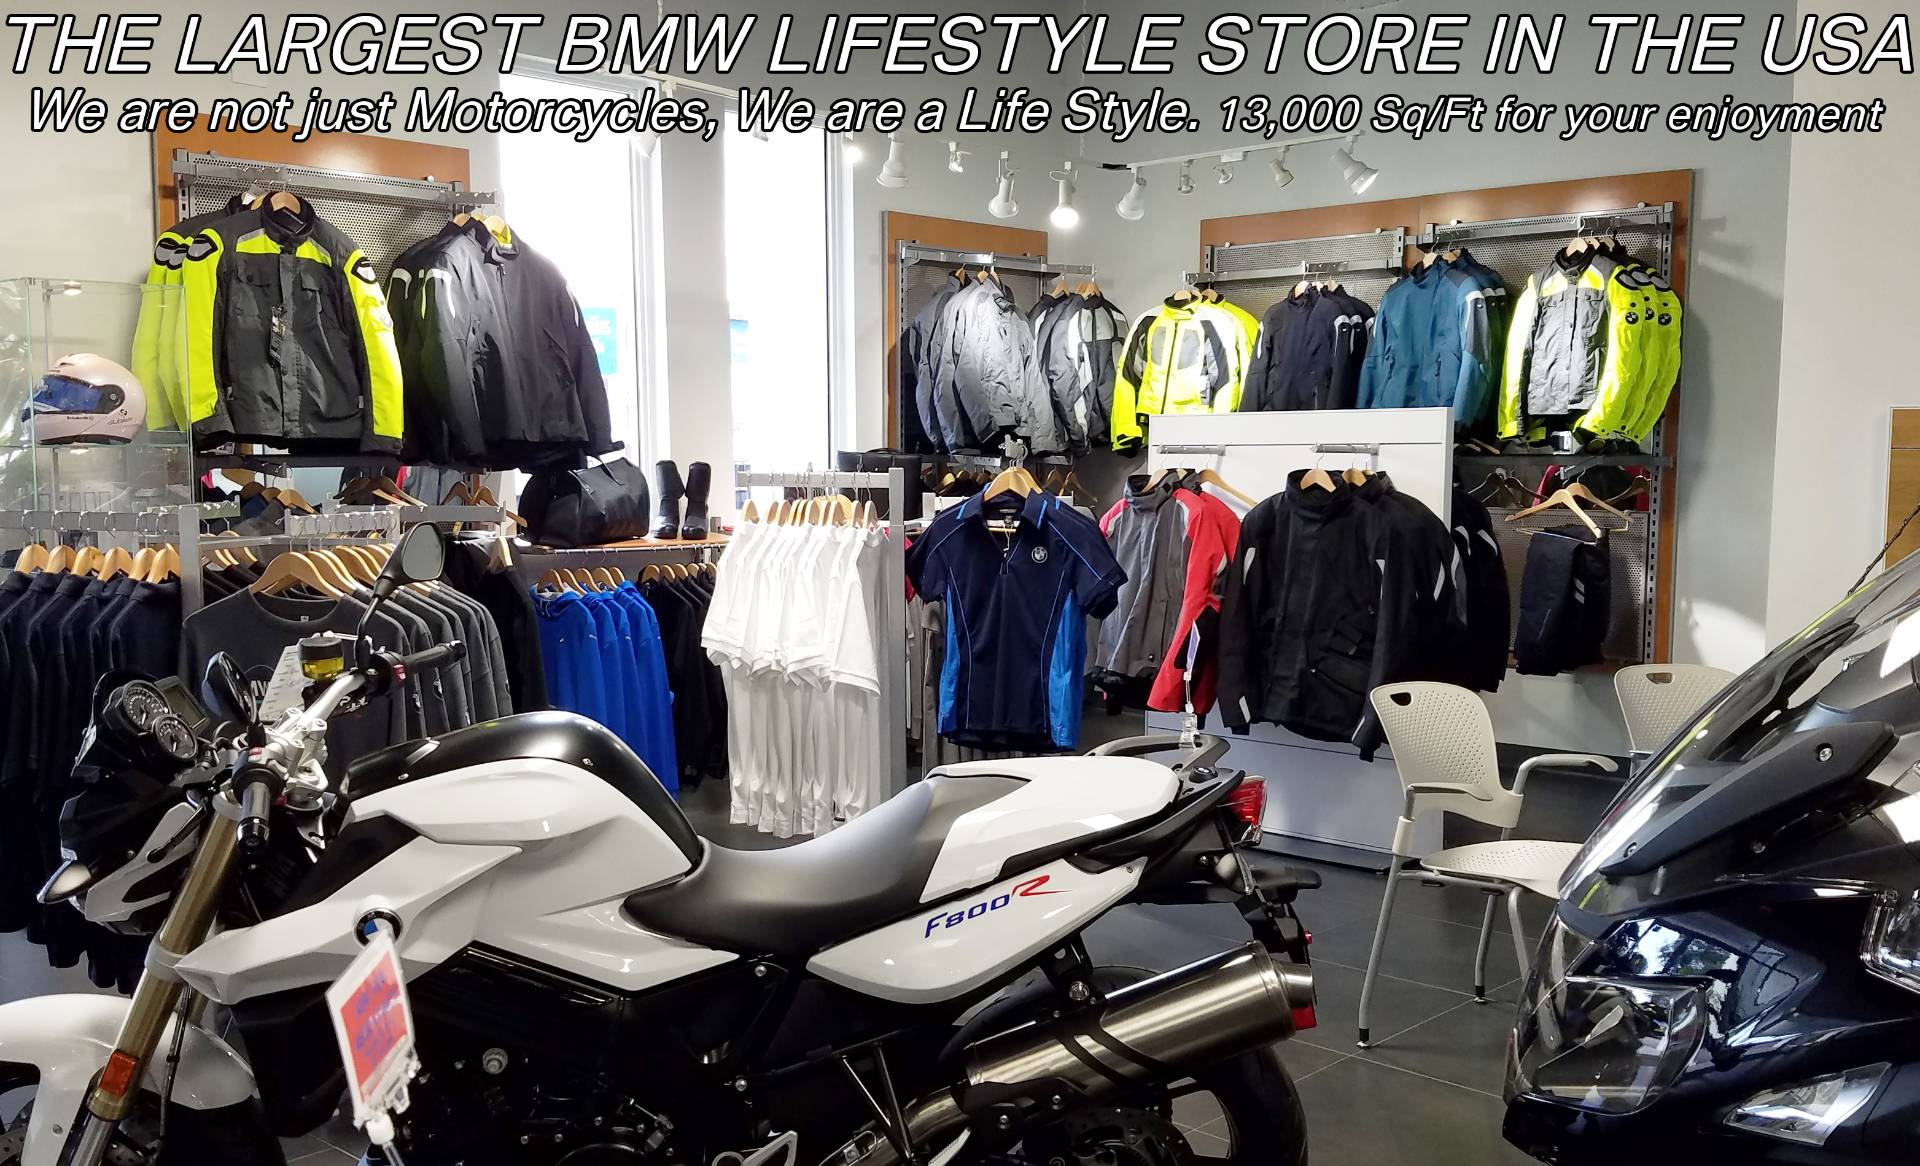 Used 2017 BMW R 1200 GSA for sale, Pre-owned BMW R1200GSA for sale, BMW Motorcycle Adventure, used BMW Adventure triple black, BMW Motorcycles of Miami, Motorcycles of Miami, Motorcycles Miami, New Motorcycles, Used Motorcycles, pre-owned. #BMWMotorcyclesOfMiami #MotorcyclesOfMiami - Photo 32